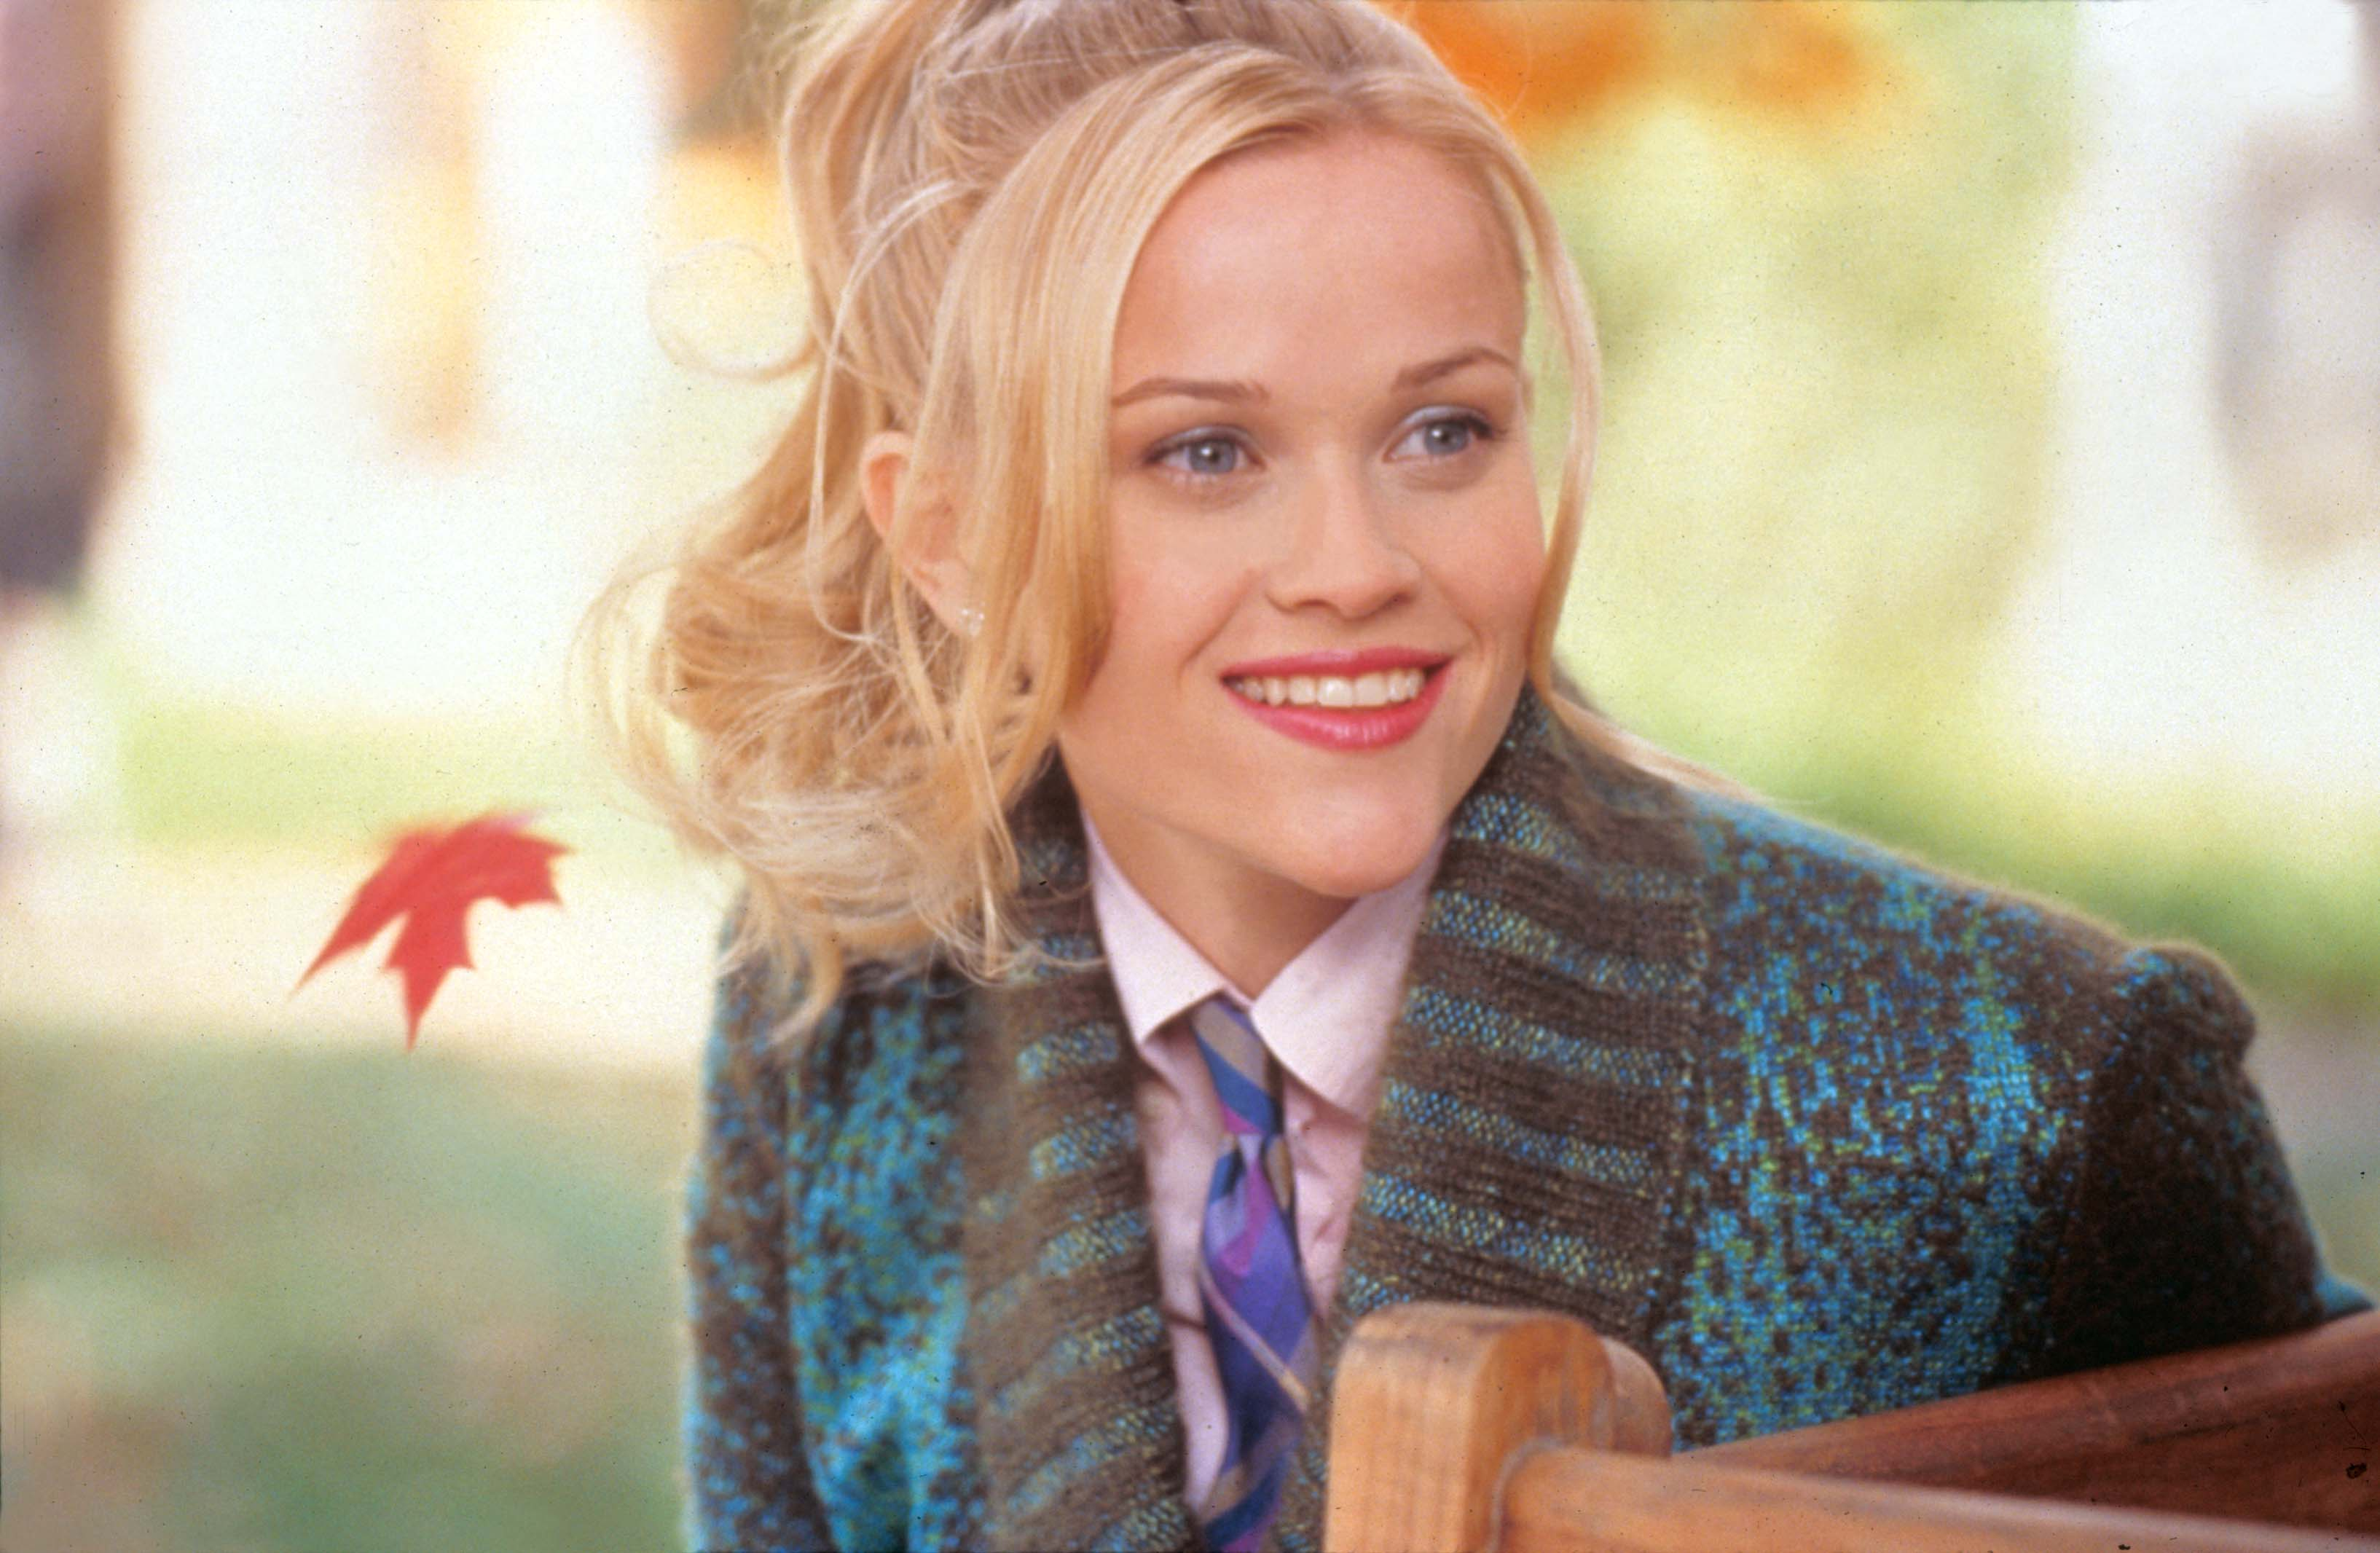 Editorial use only. No book cover usage.Mandatory Credit: Photo by Moviestore/Shutterstock (1574821a) Legally Blonde, Reese Witherspoon Film and Television